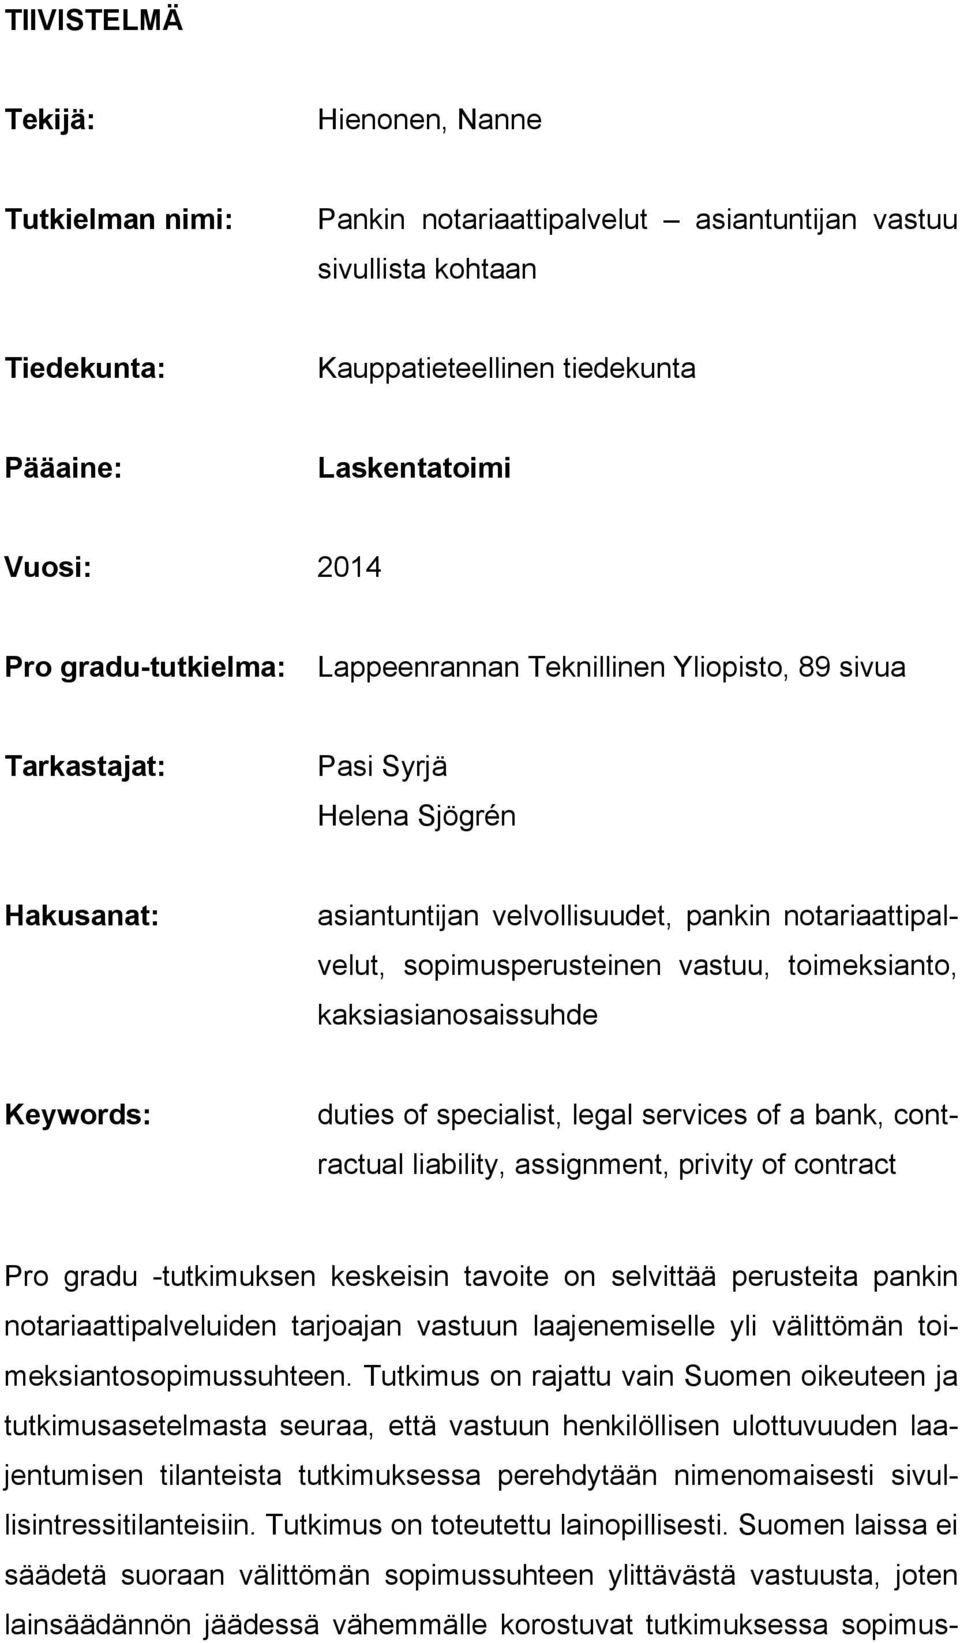 vastuu, toimeksianto, kaksiasianosaissuhde Keywords: duties of specialist, legal services of a bank, contractual liability, assignment, privity of contract Pro gradu -tutkimuksen keskeisin tavoite on